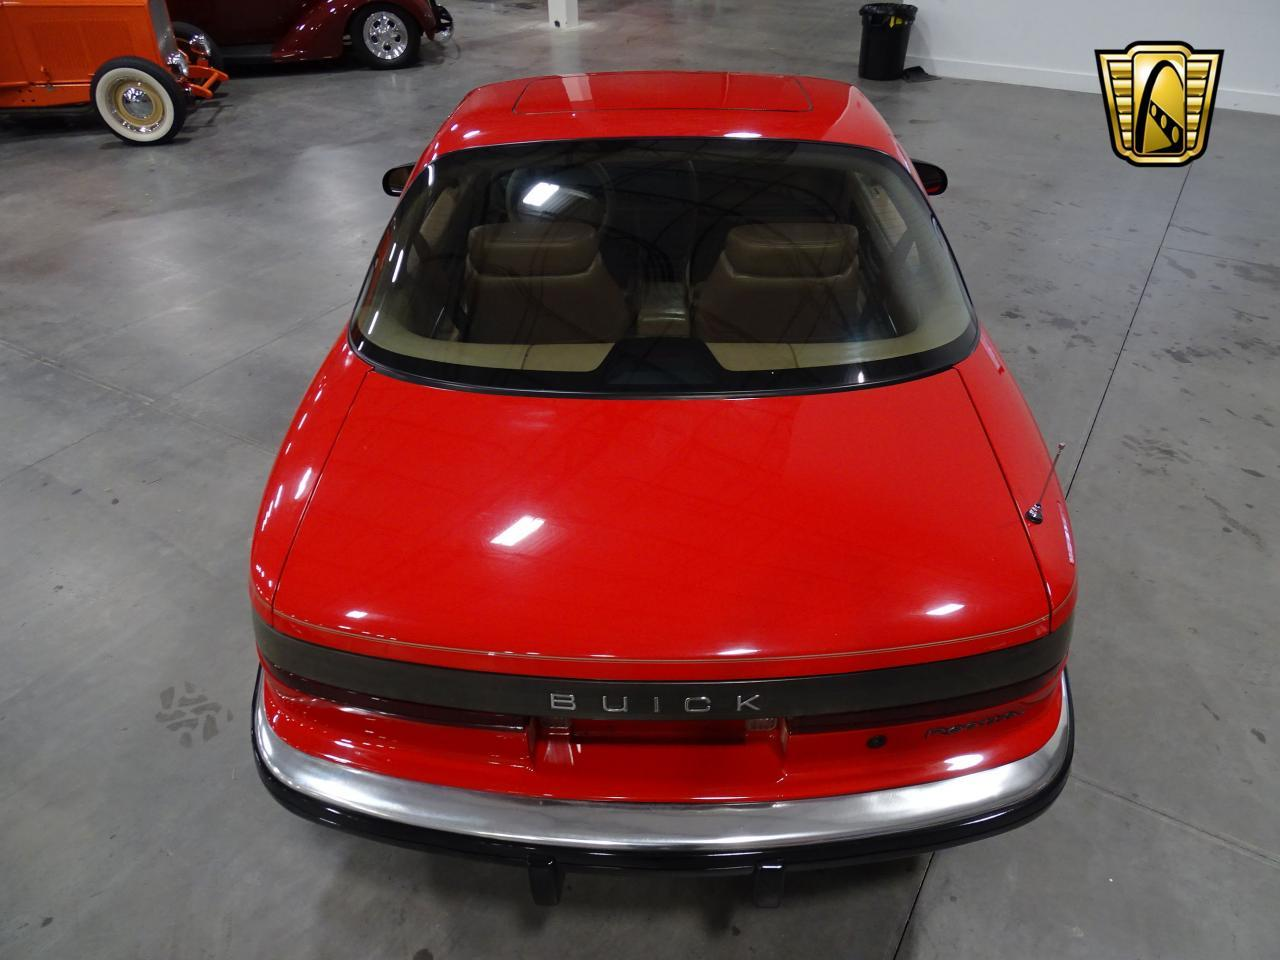 Large Picture of 1990 Buick Reatta located in DFW Airport Texas Offered by Gateway Classic Cars - Dallas - KOB1